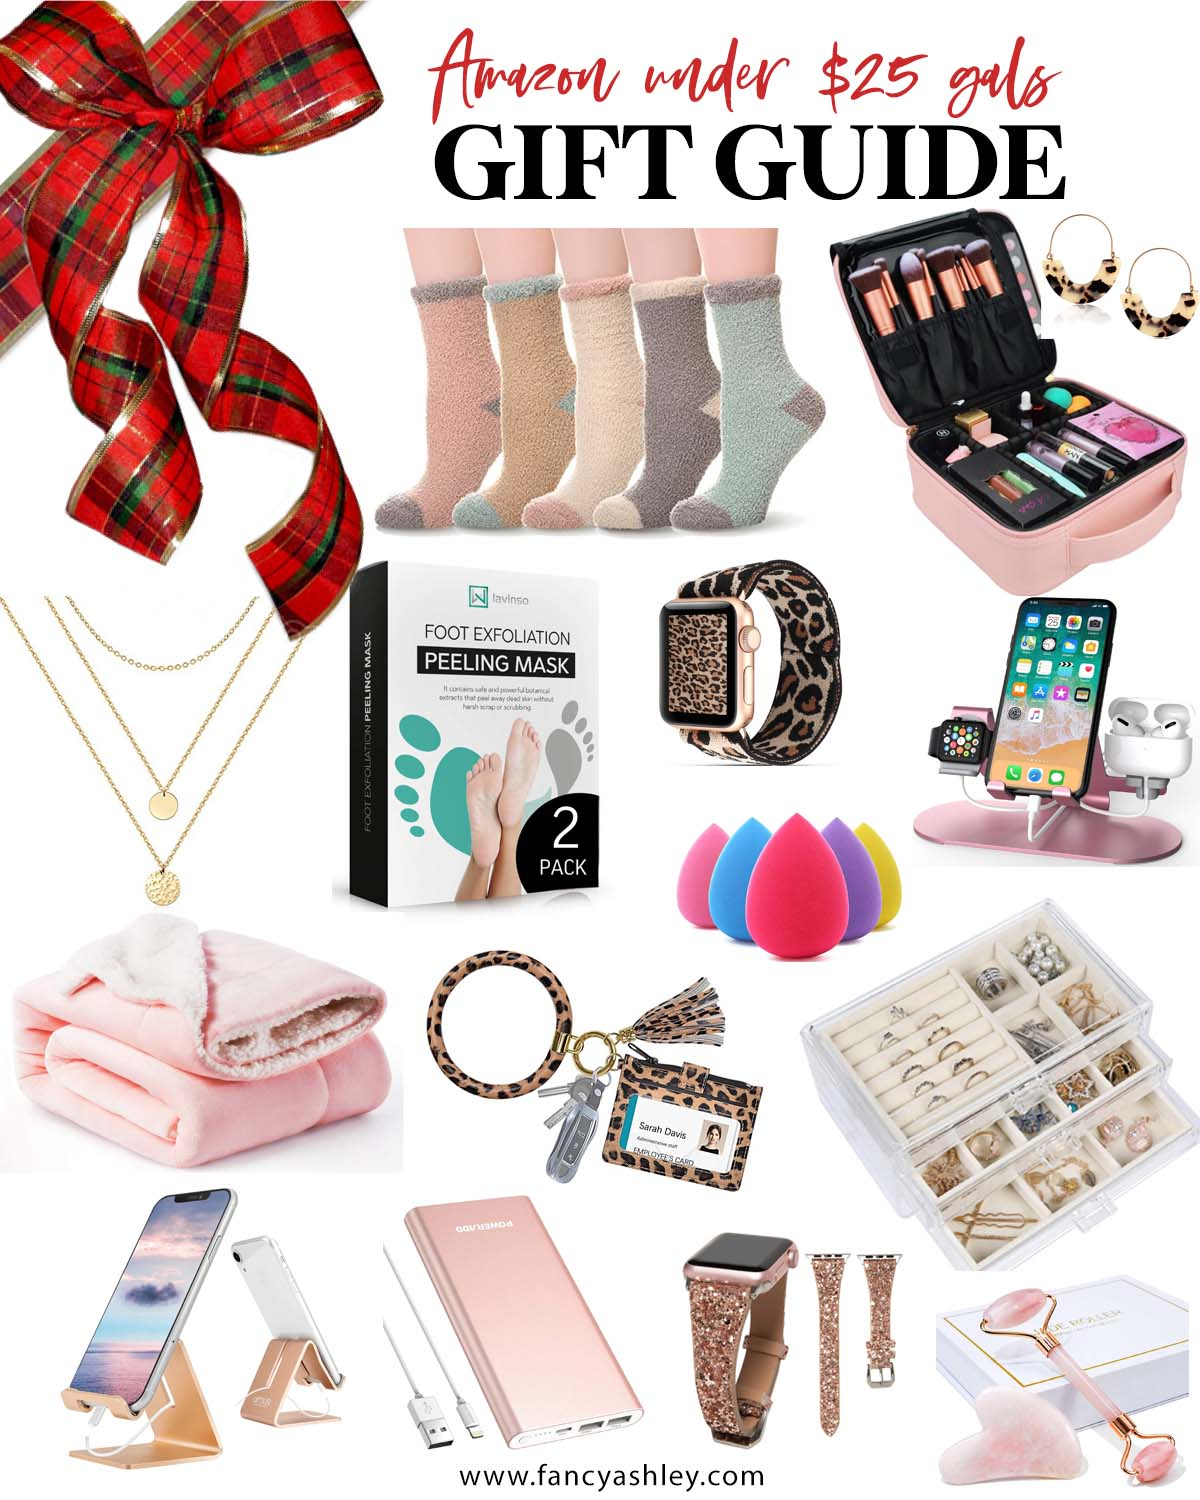 Amazon Gifts Under $25 by popular Houston life and style blog, Fancy Ashley: collage image of fuzzy socks, makeup case, hoop earrings, leopard print Apple watch band, gold layer necklace, foot exfoliation kit, rose quartz face roller, iphone stand, portable batter charger, beauty blender, key ring, and jewelry orgainzer.